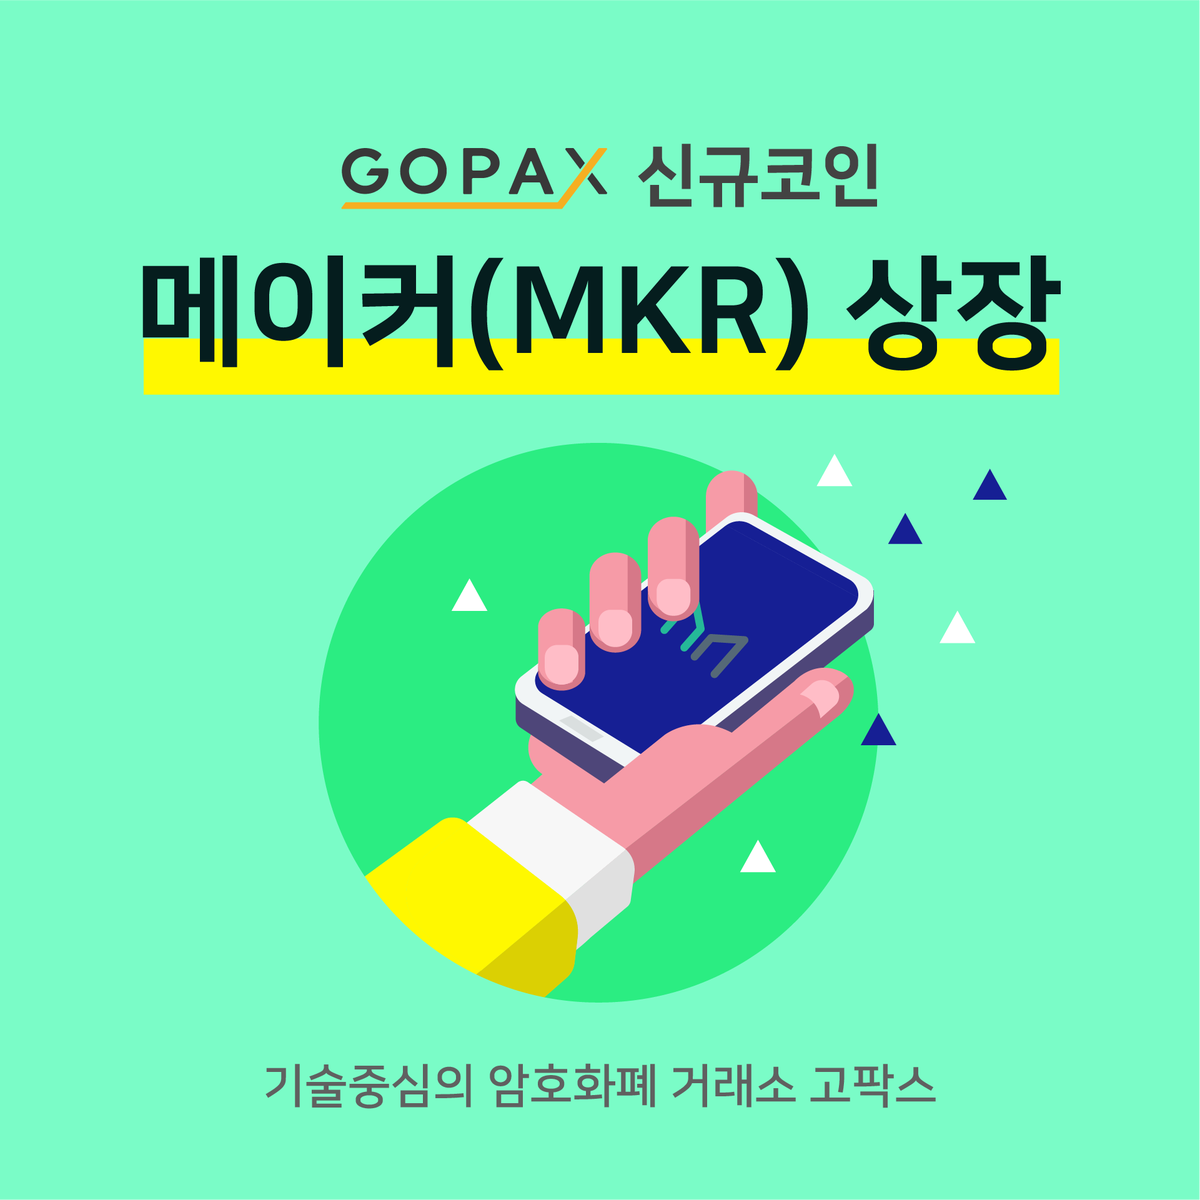 Read More From Our News Out Of Korea Https Medium Makerdao Gopax Introduces Mkr Krw Pairing And Dai As Quote Currency 86d9a7e617d8 Pic Twitter